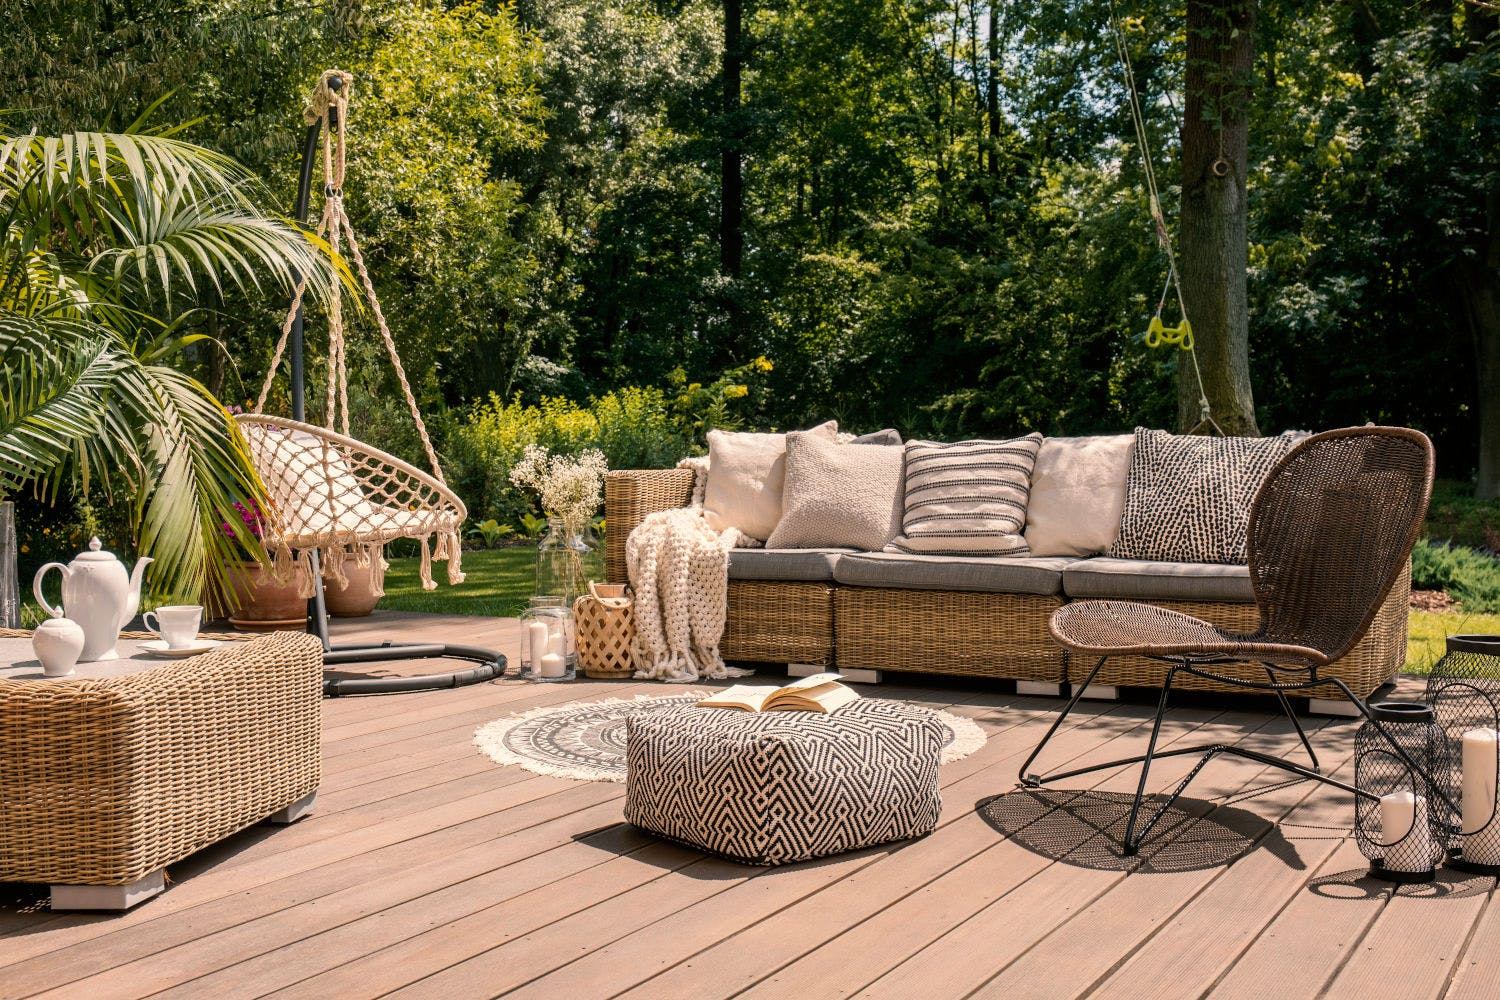 Image of shutterstock 1170474235 1 in {{Terraces: the protagonists of a summer at home}} - Cosentino